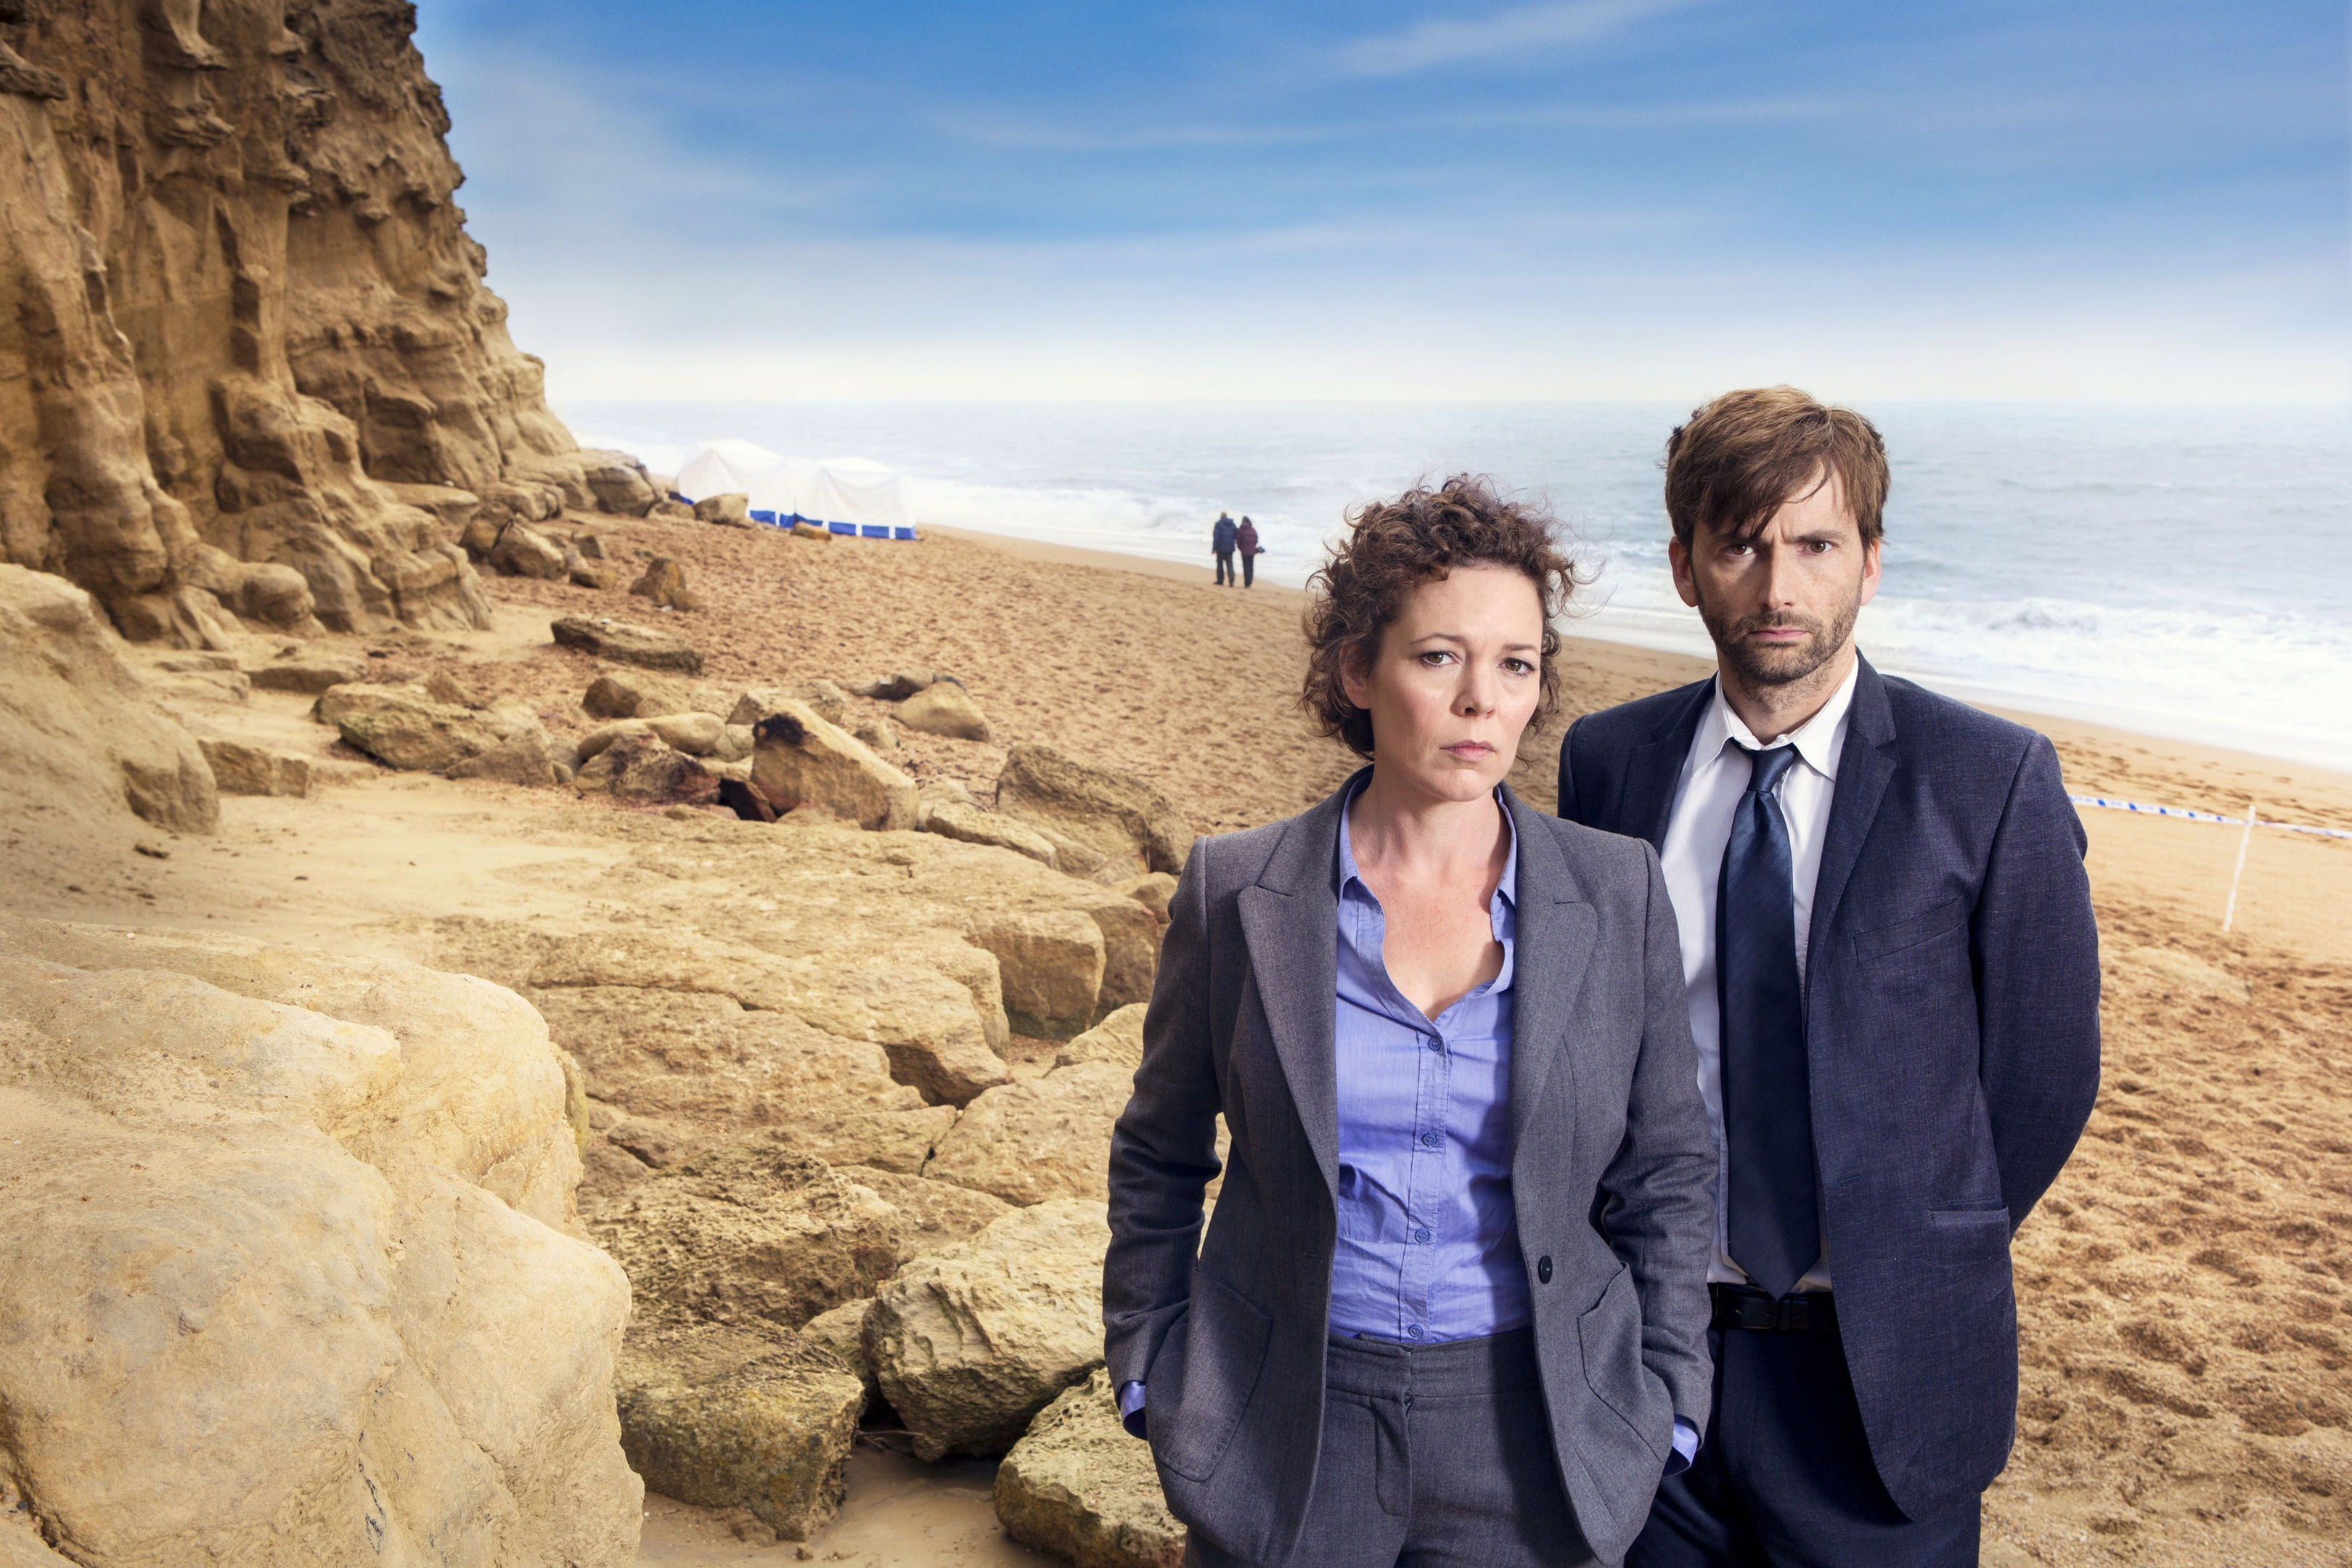 David Tennant and Olivia Colman in their roles as Detective Inspector Alec Hardy and Detective Sergeant Ellie Miller in Broadchurch (Patrick Redmond/ITV/PA Wire)